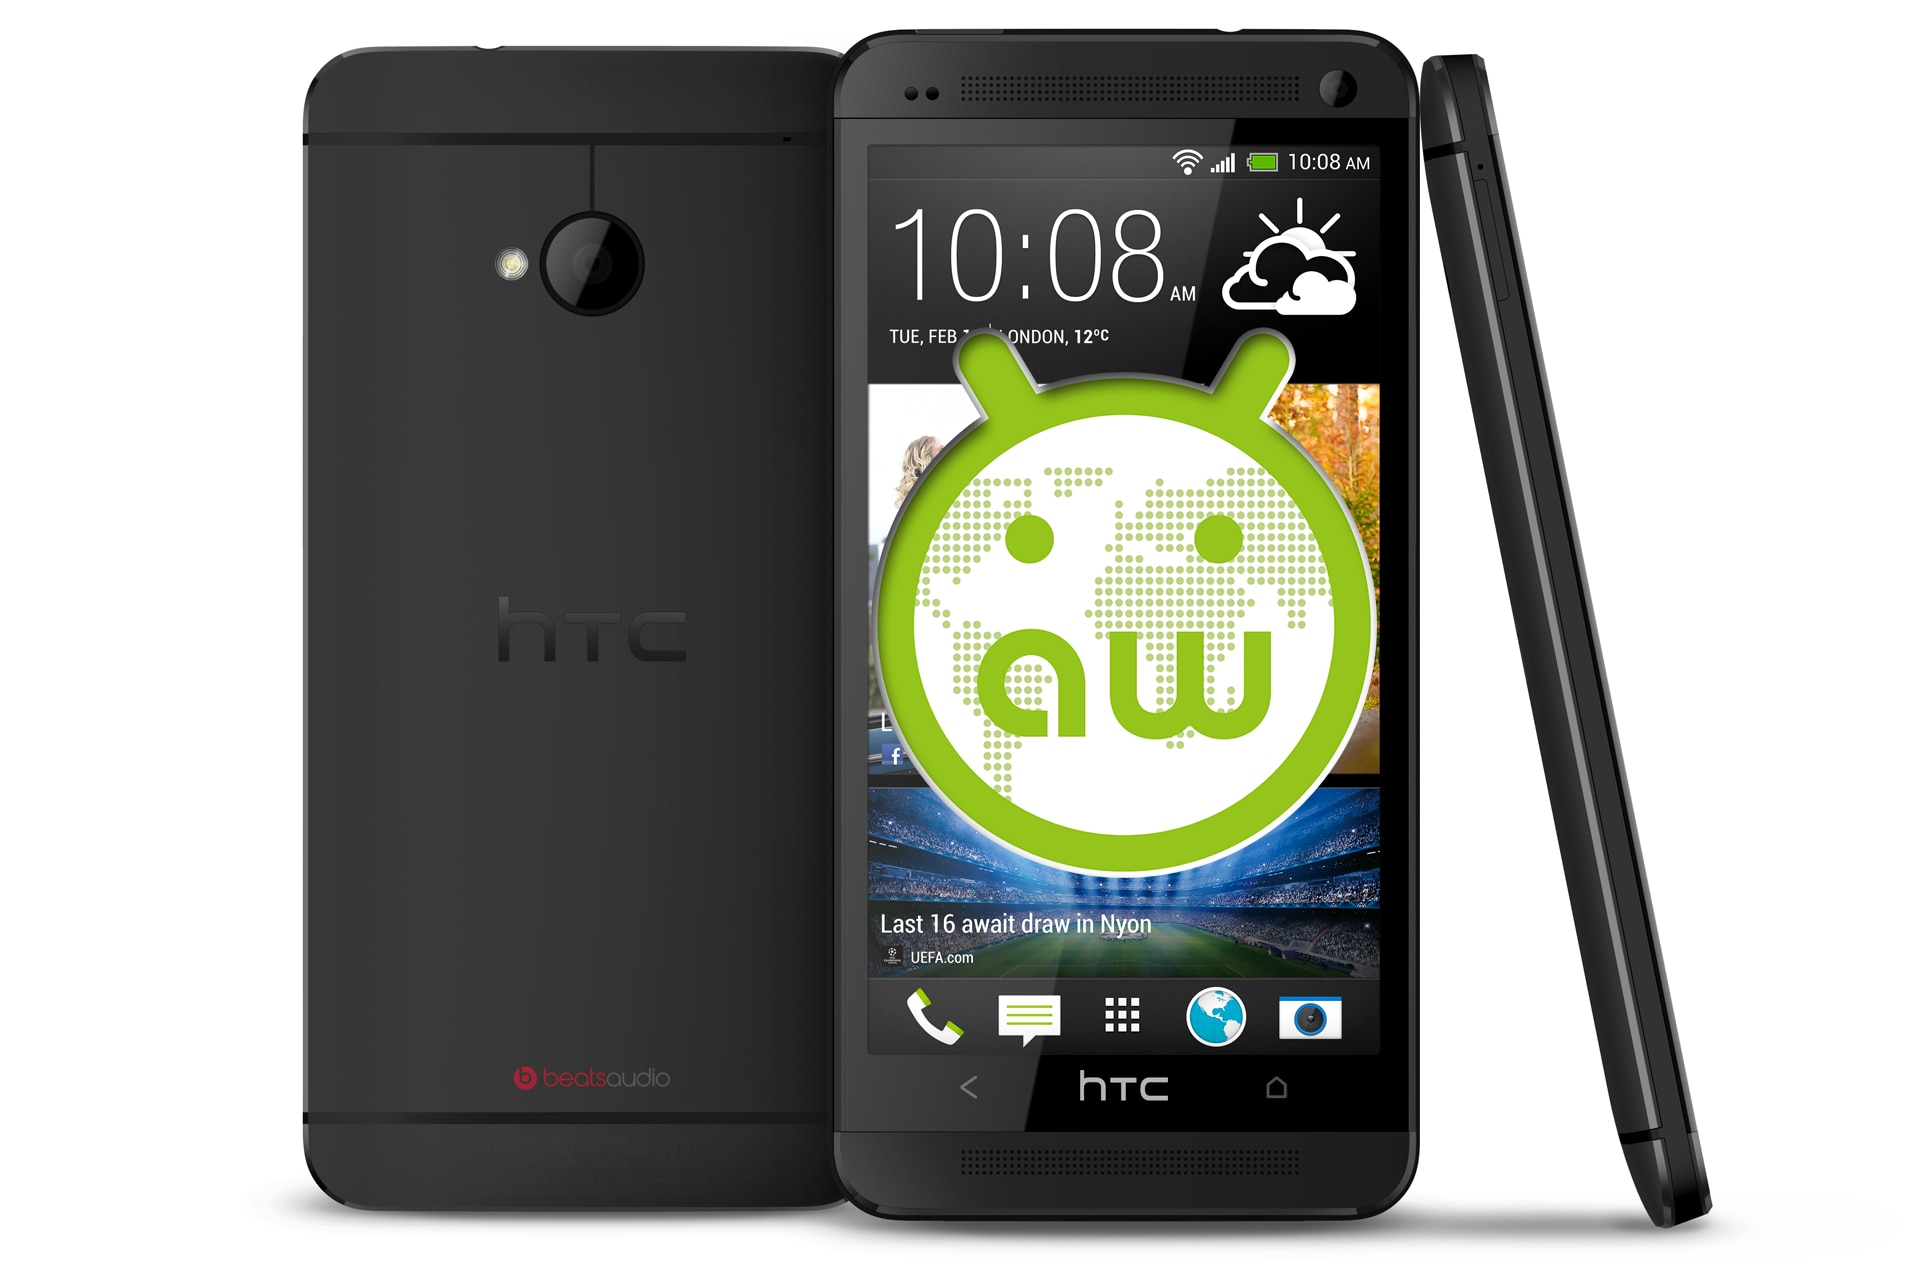 AndroidWorld.it partner di BlinkFeed in HTC One